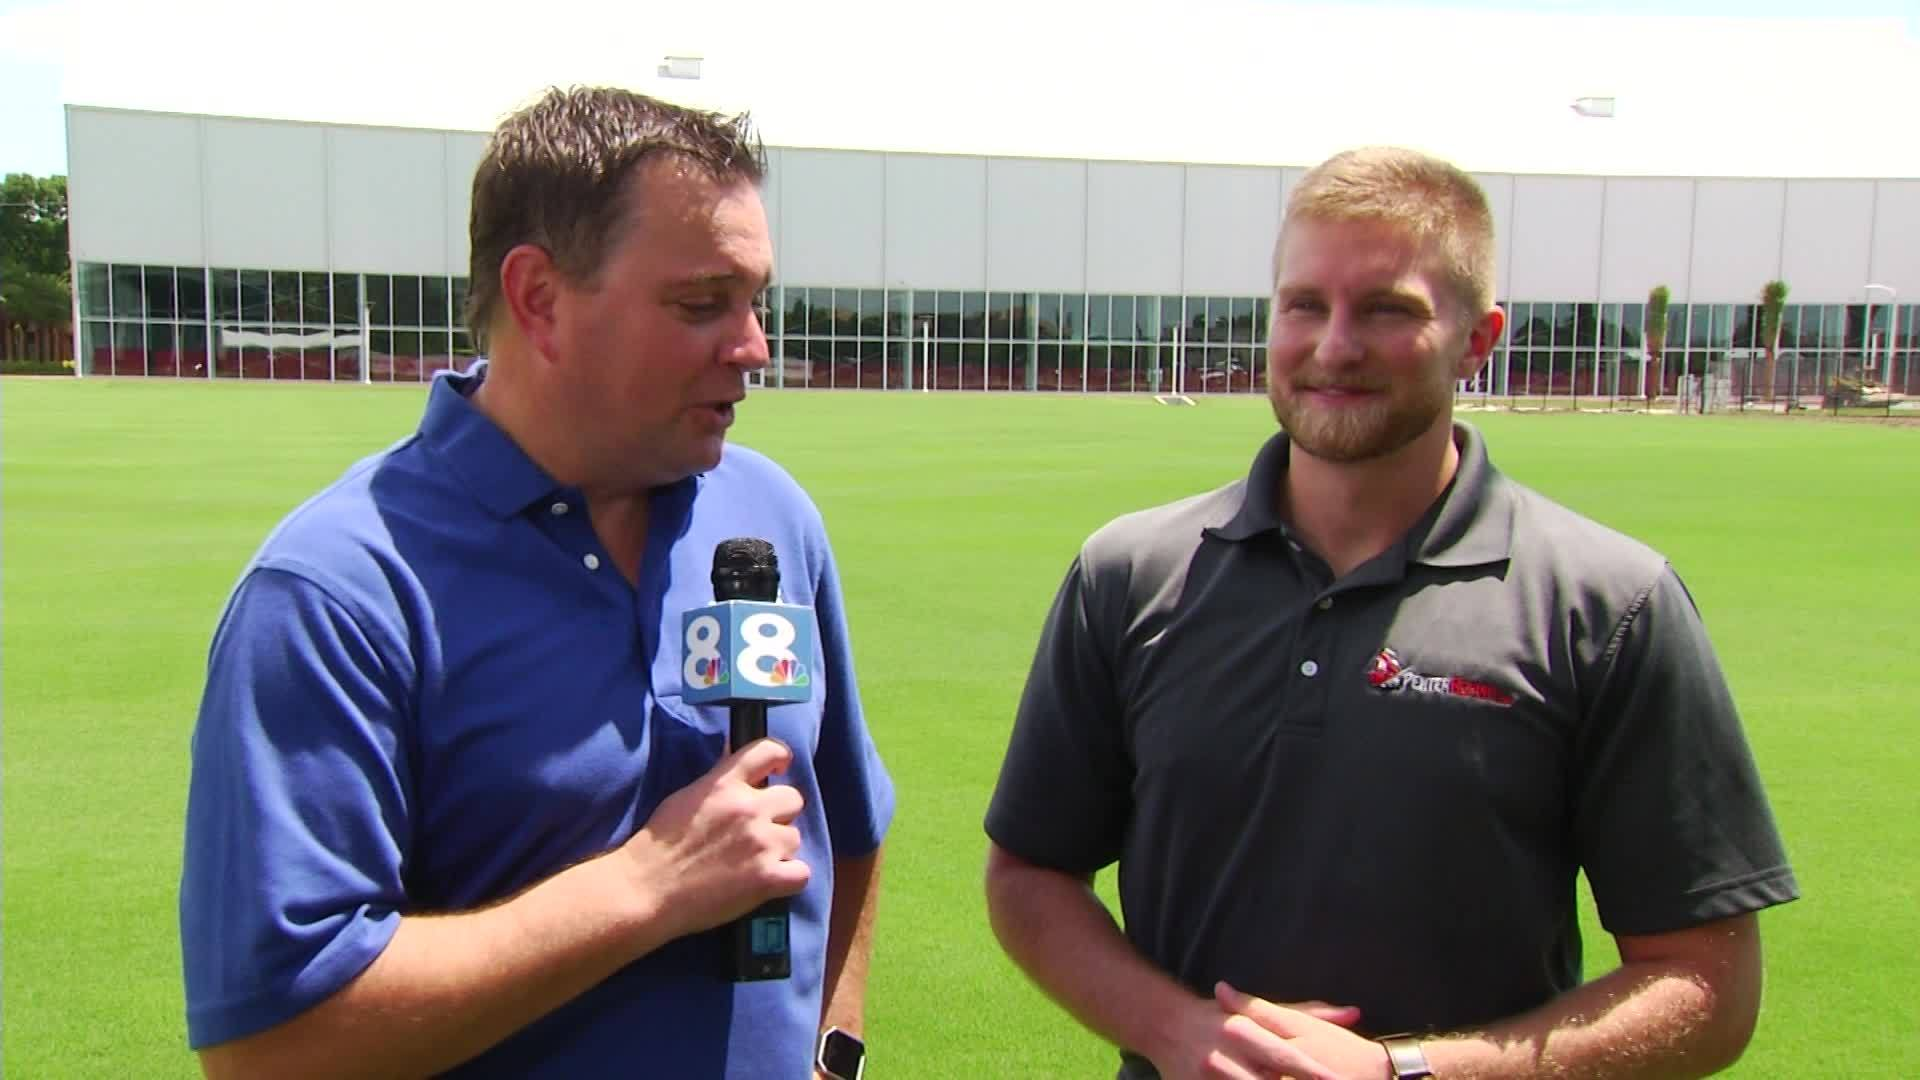 Bucs Training Camp Preview: Wide Receivers and Tight Ends